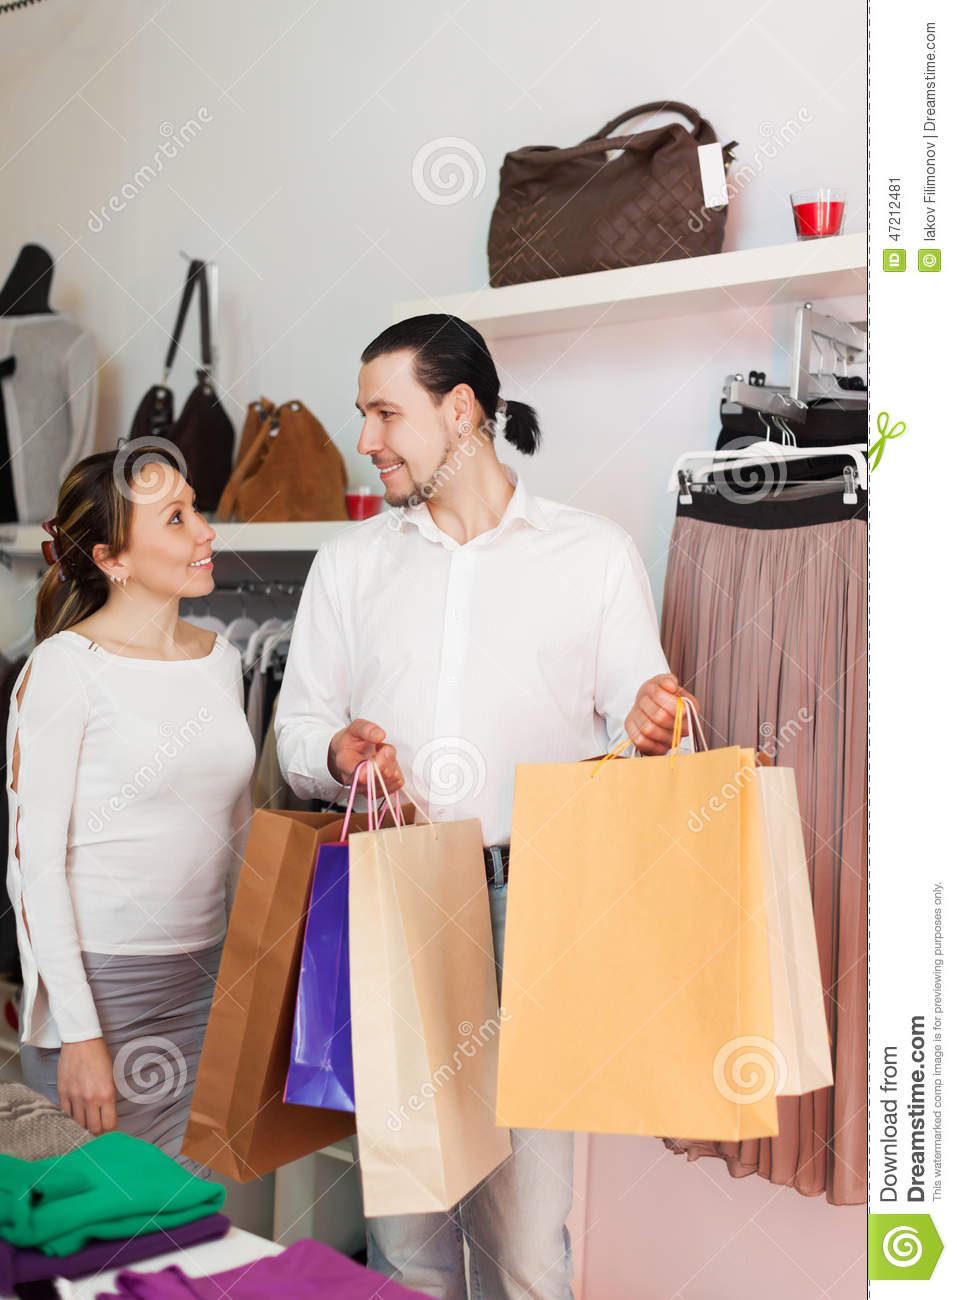 Clothing stores online Couple clothing store